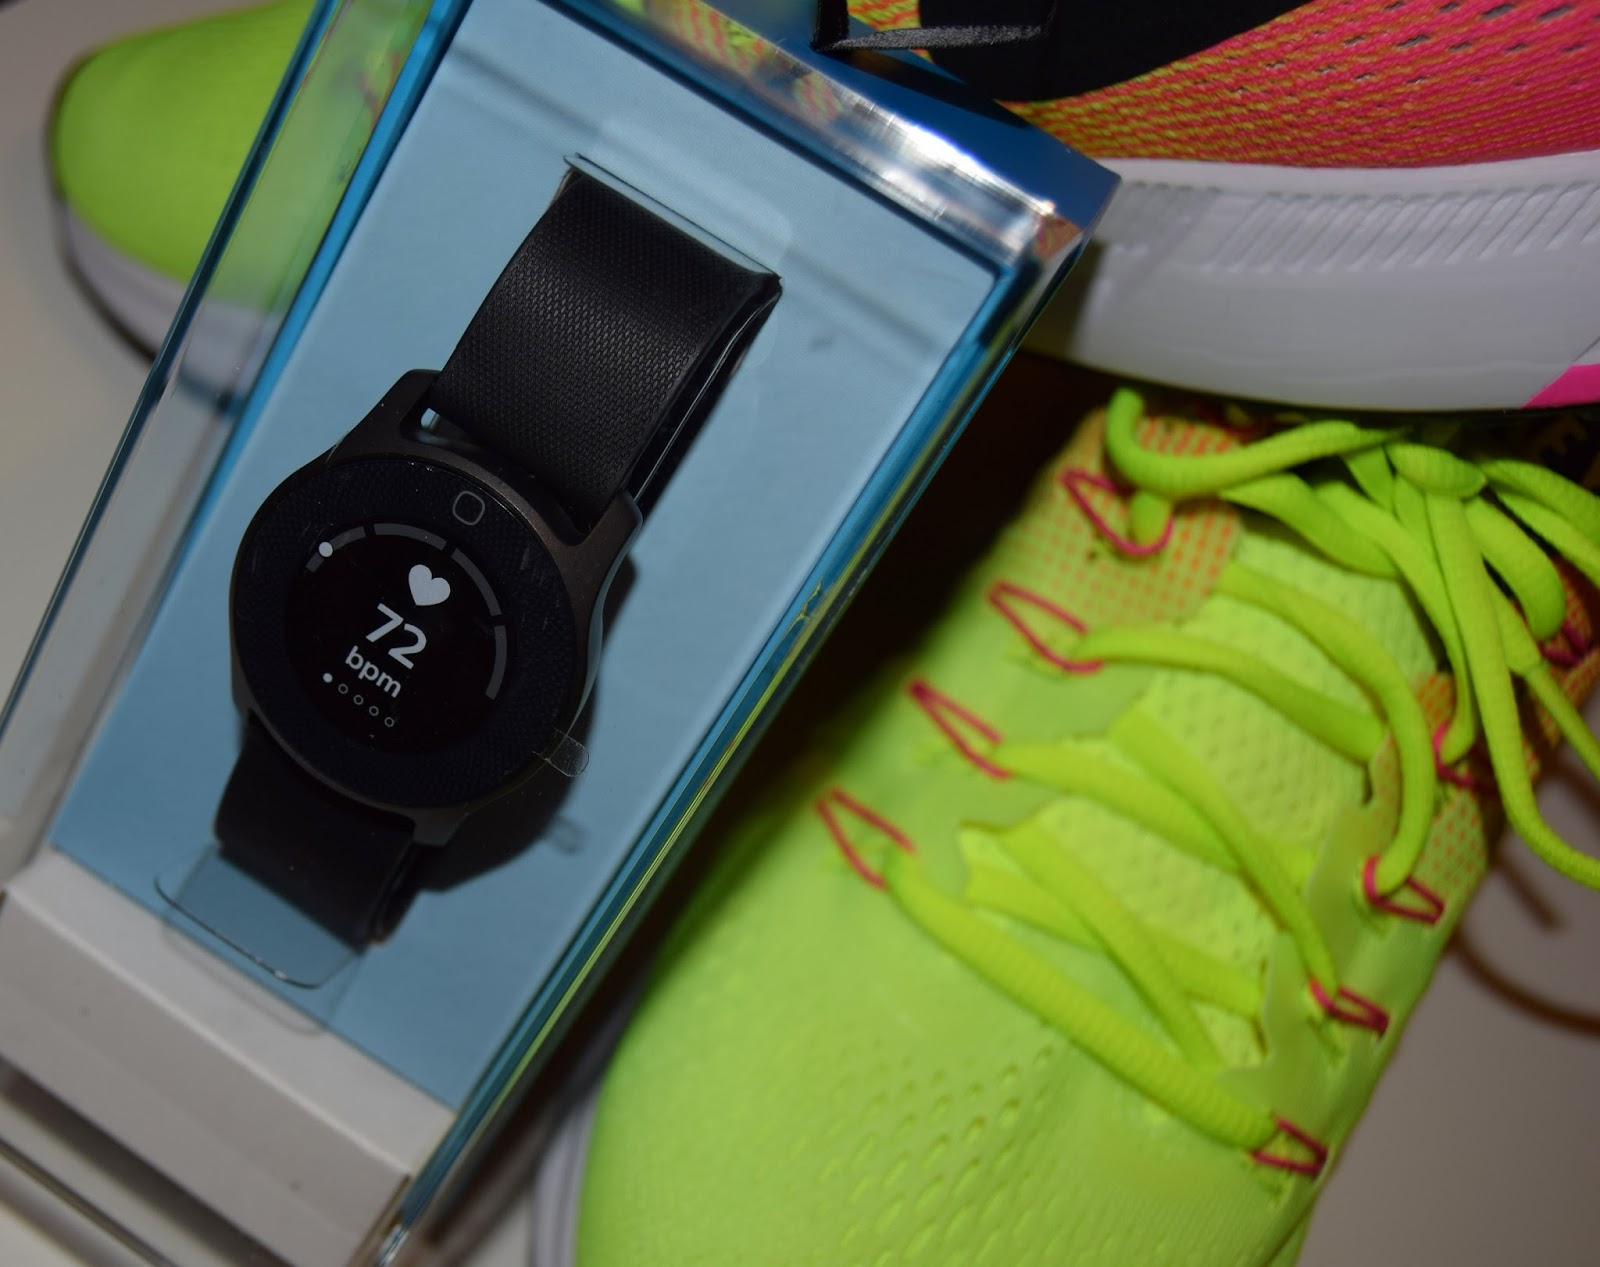 Nike trainer and watch